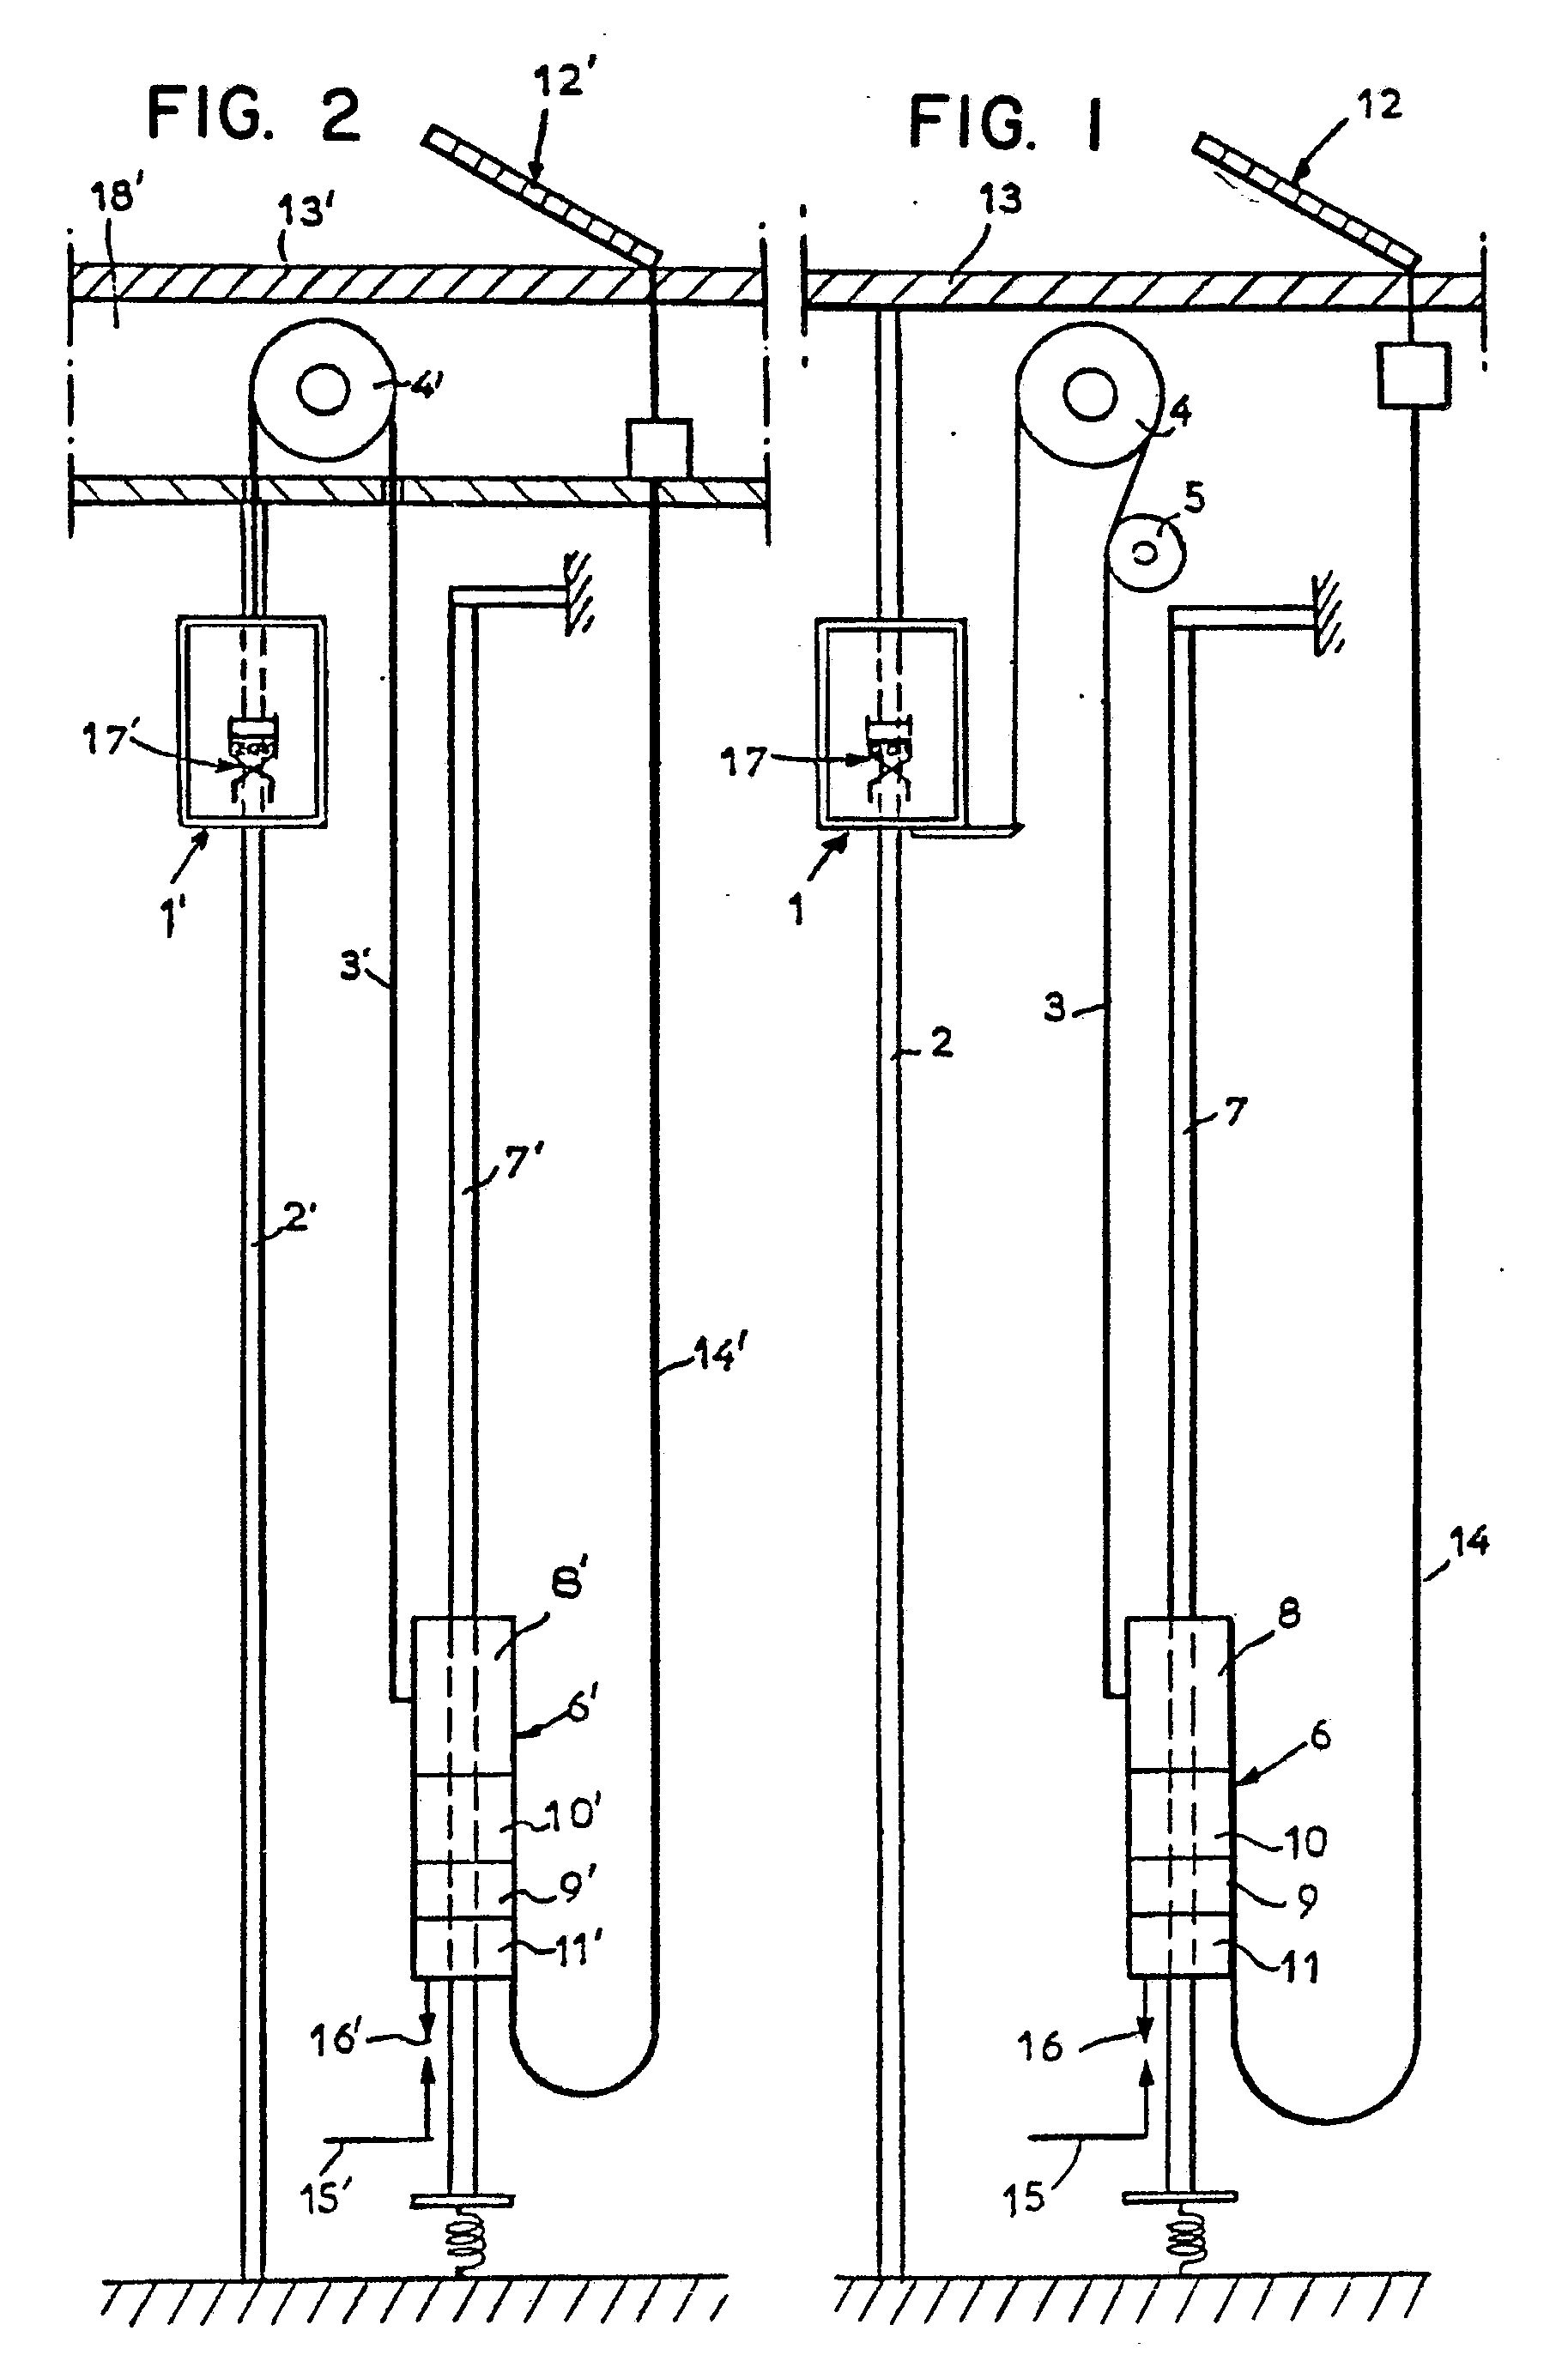 Patent Ep0048847b1 Self Powered Elevator Using A Linear